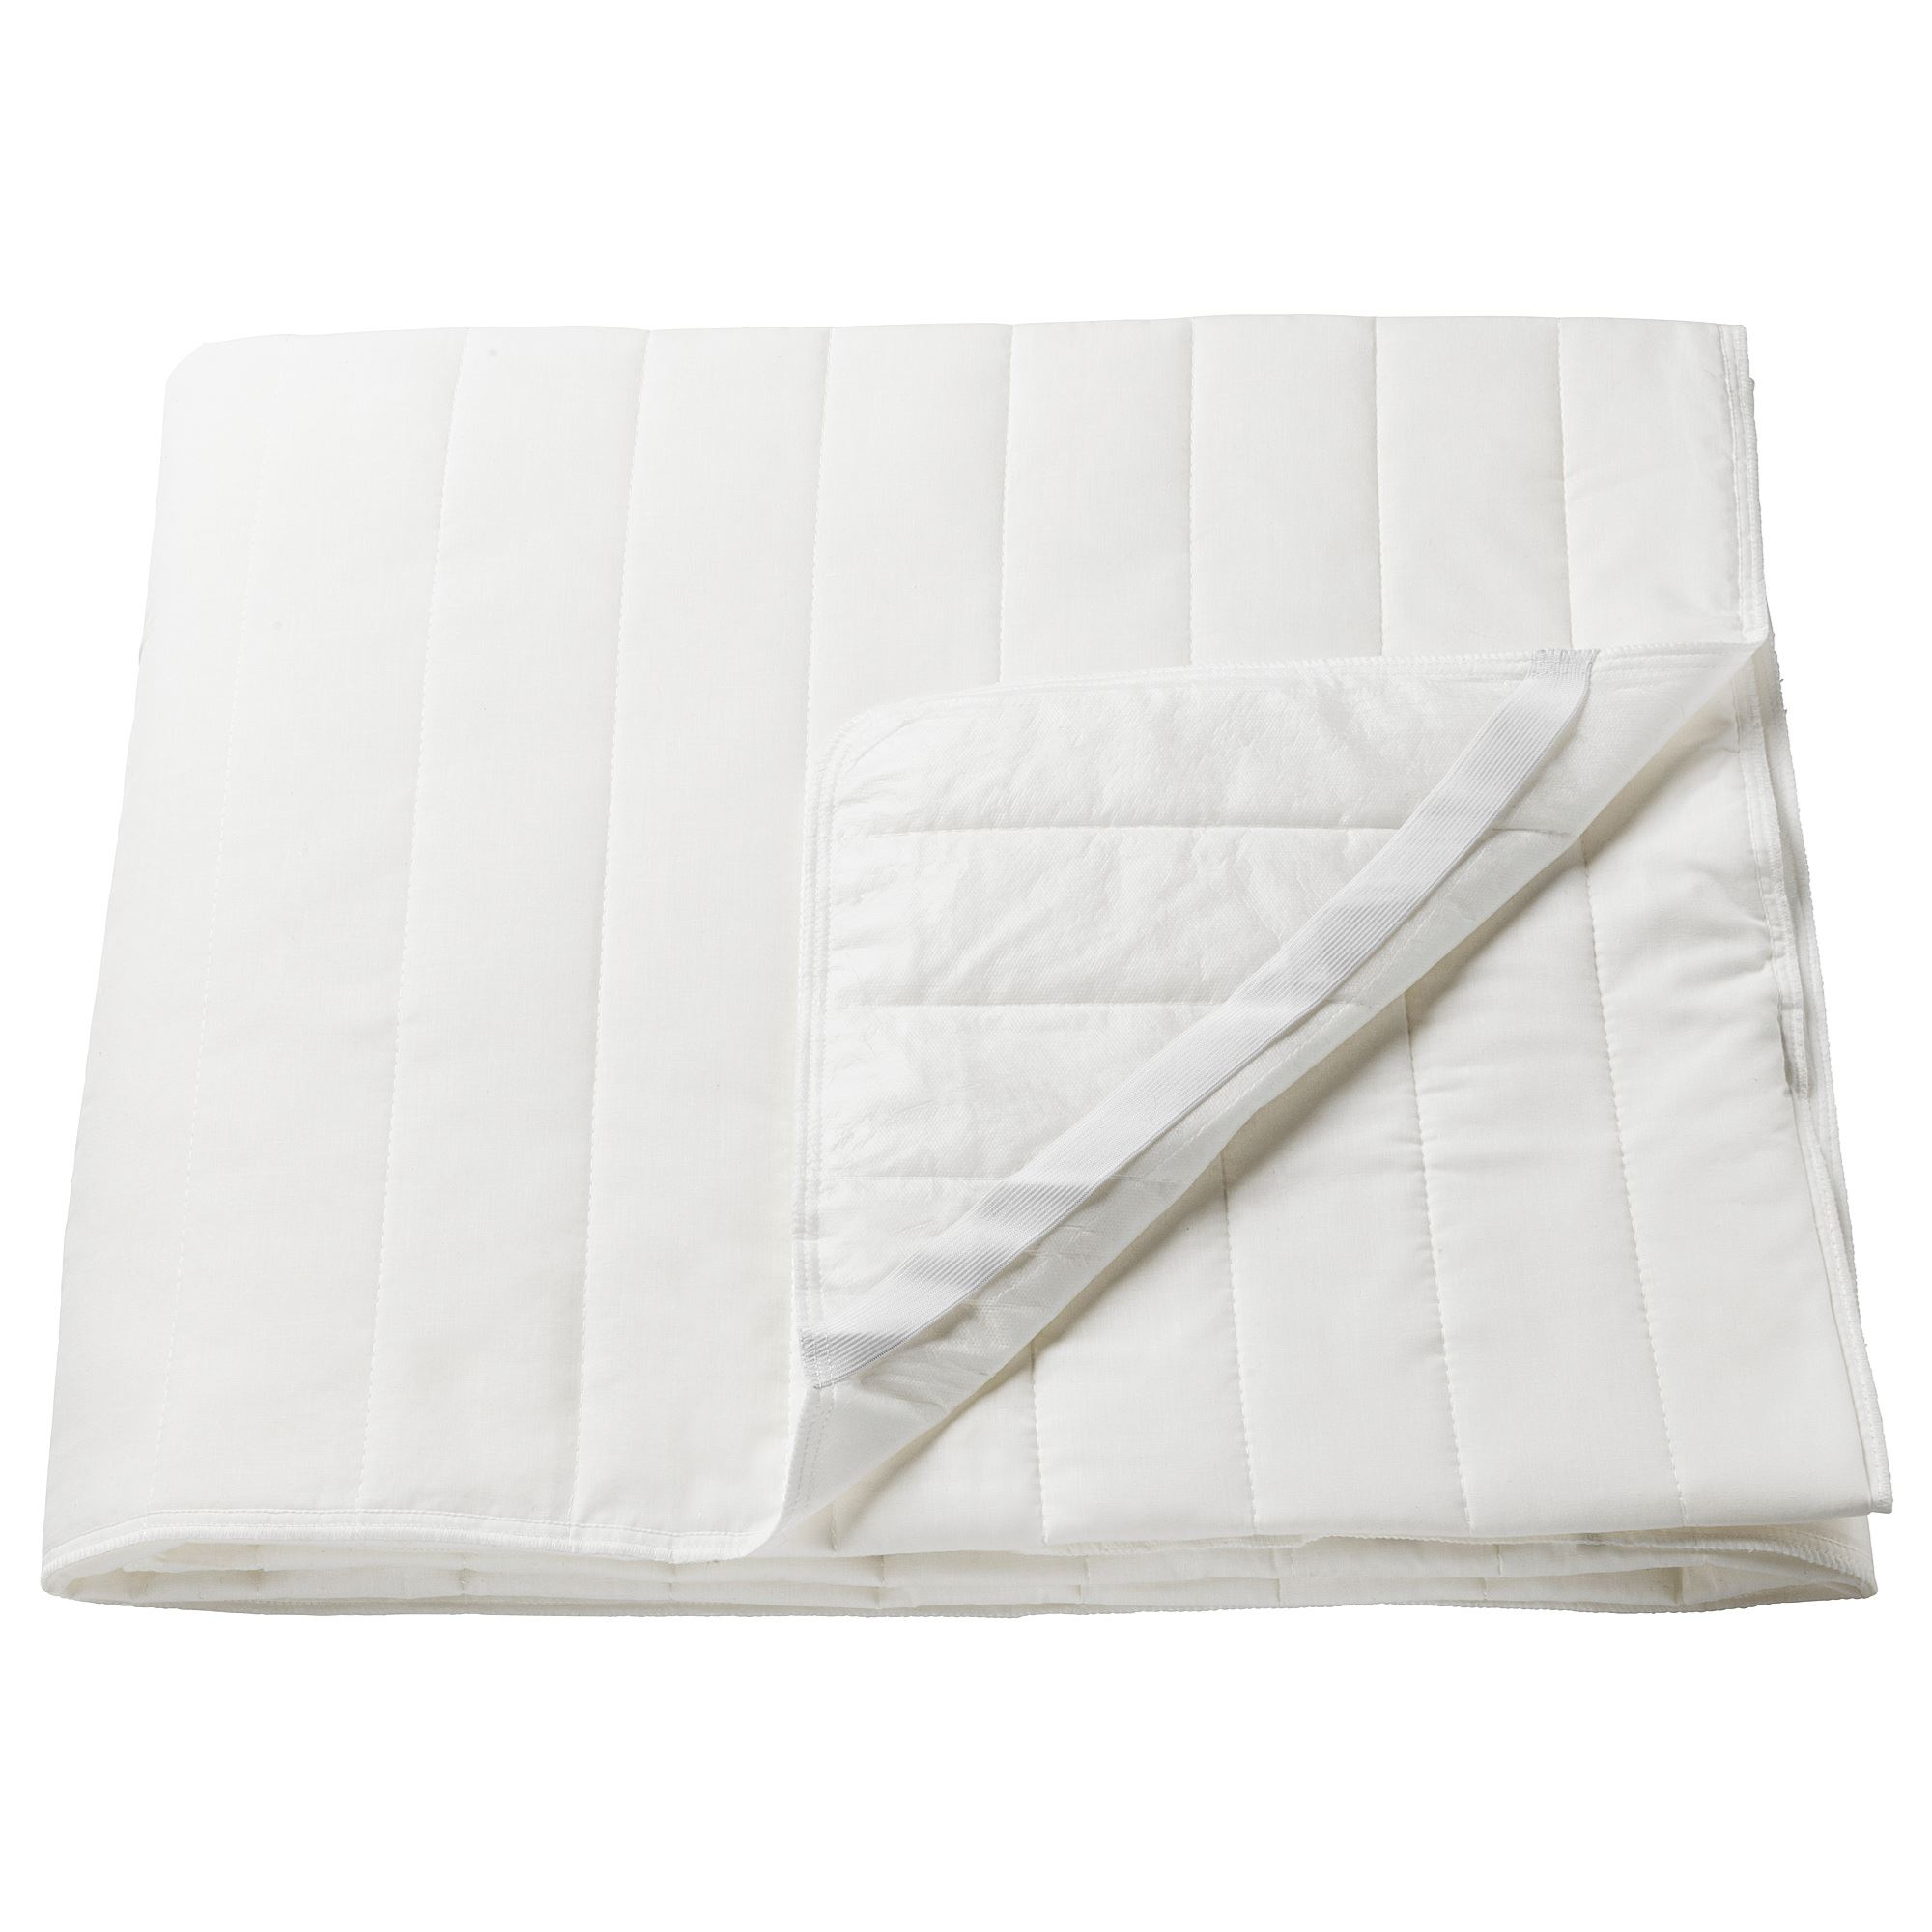 Double Bed Mattress Cover Angsvide Mattress Protector White 140x200 Cm Ikea Home Textile